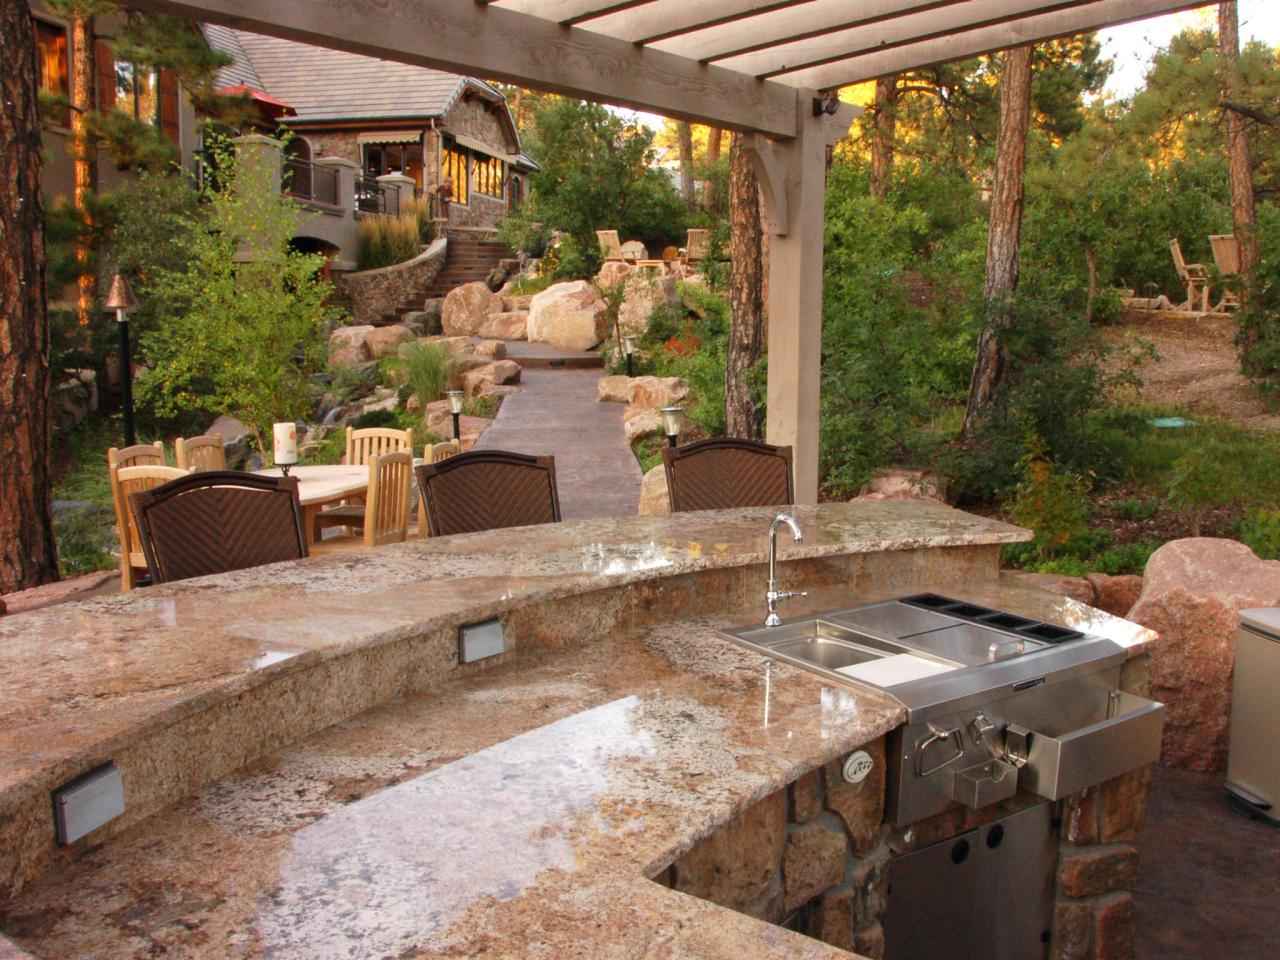 outdoor kitchen images photo - 2